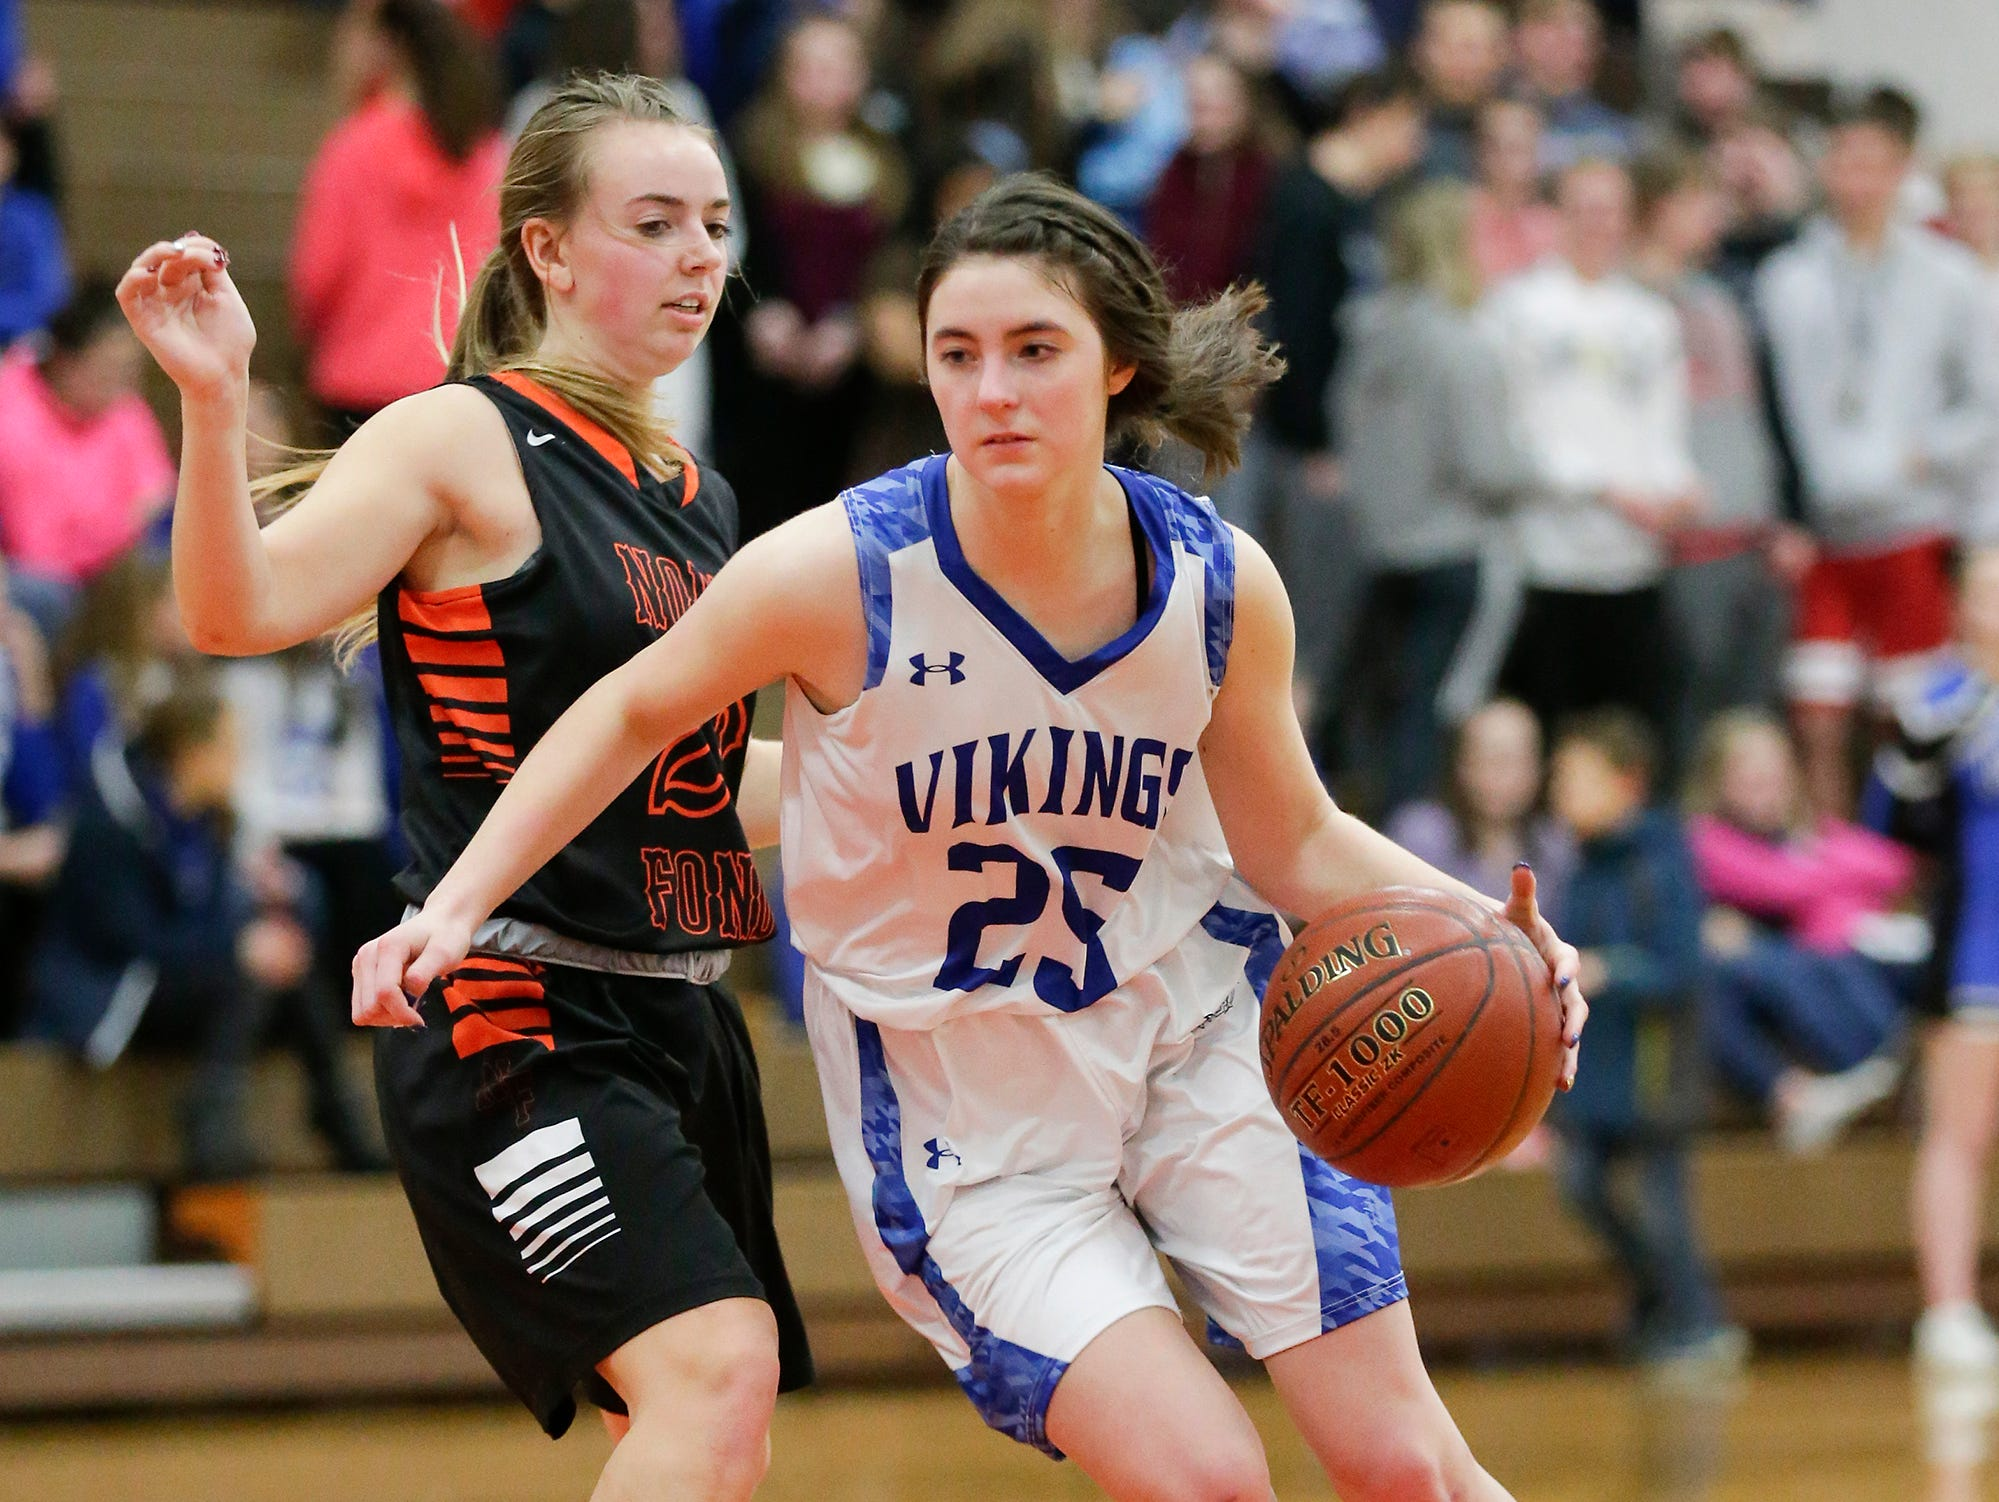 Winnebago Lutheran Academy girls basketball's Geneva Hewitt makes her way past North Fond du Lac High School's Jordyn Stattbacher January 10, 2019 during their game in Fond du Lac. Doug Raflik/USA TODAY NETWORK-Wisconsin